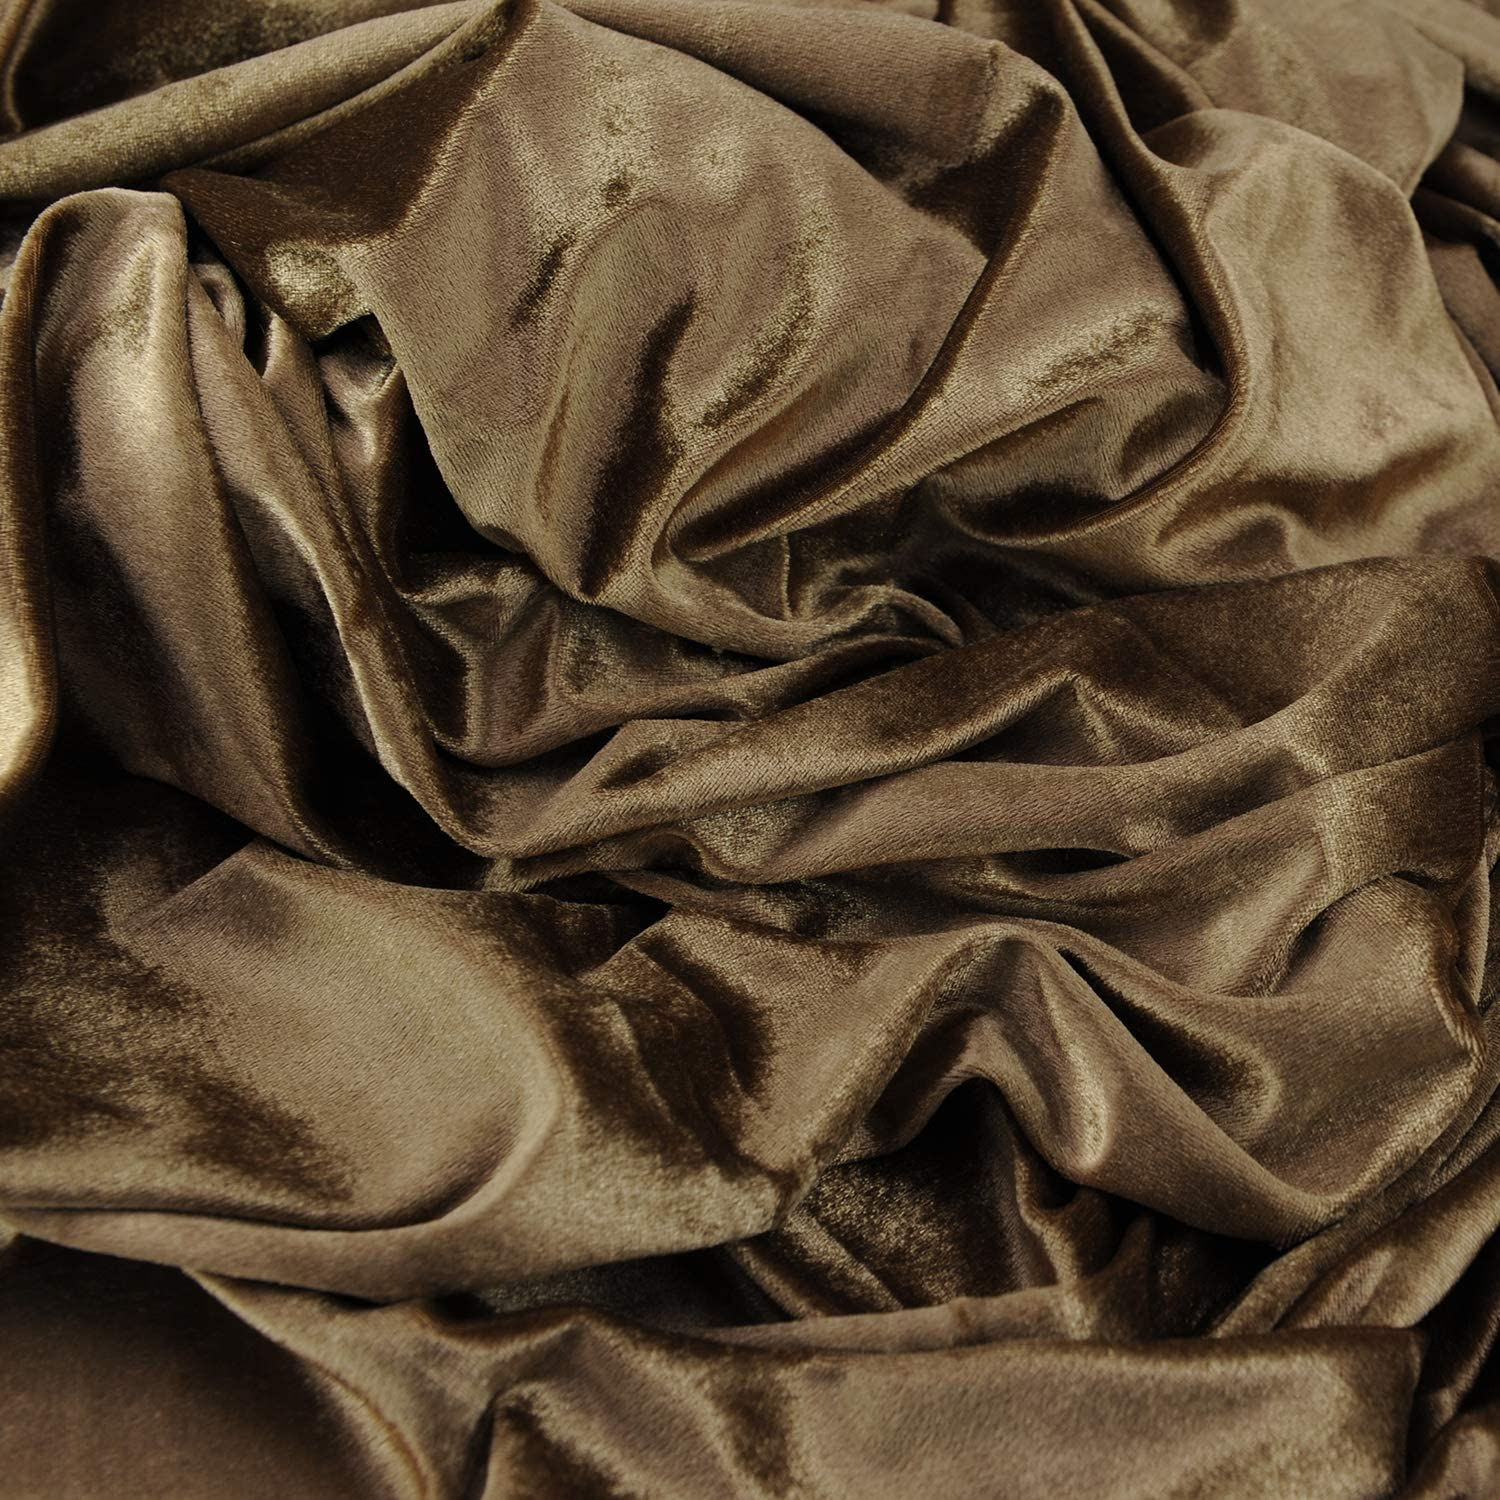 Stretch Velvet Fabric for Costumes and Crafting by The Yard Dark Khaki,1 Yard